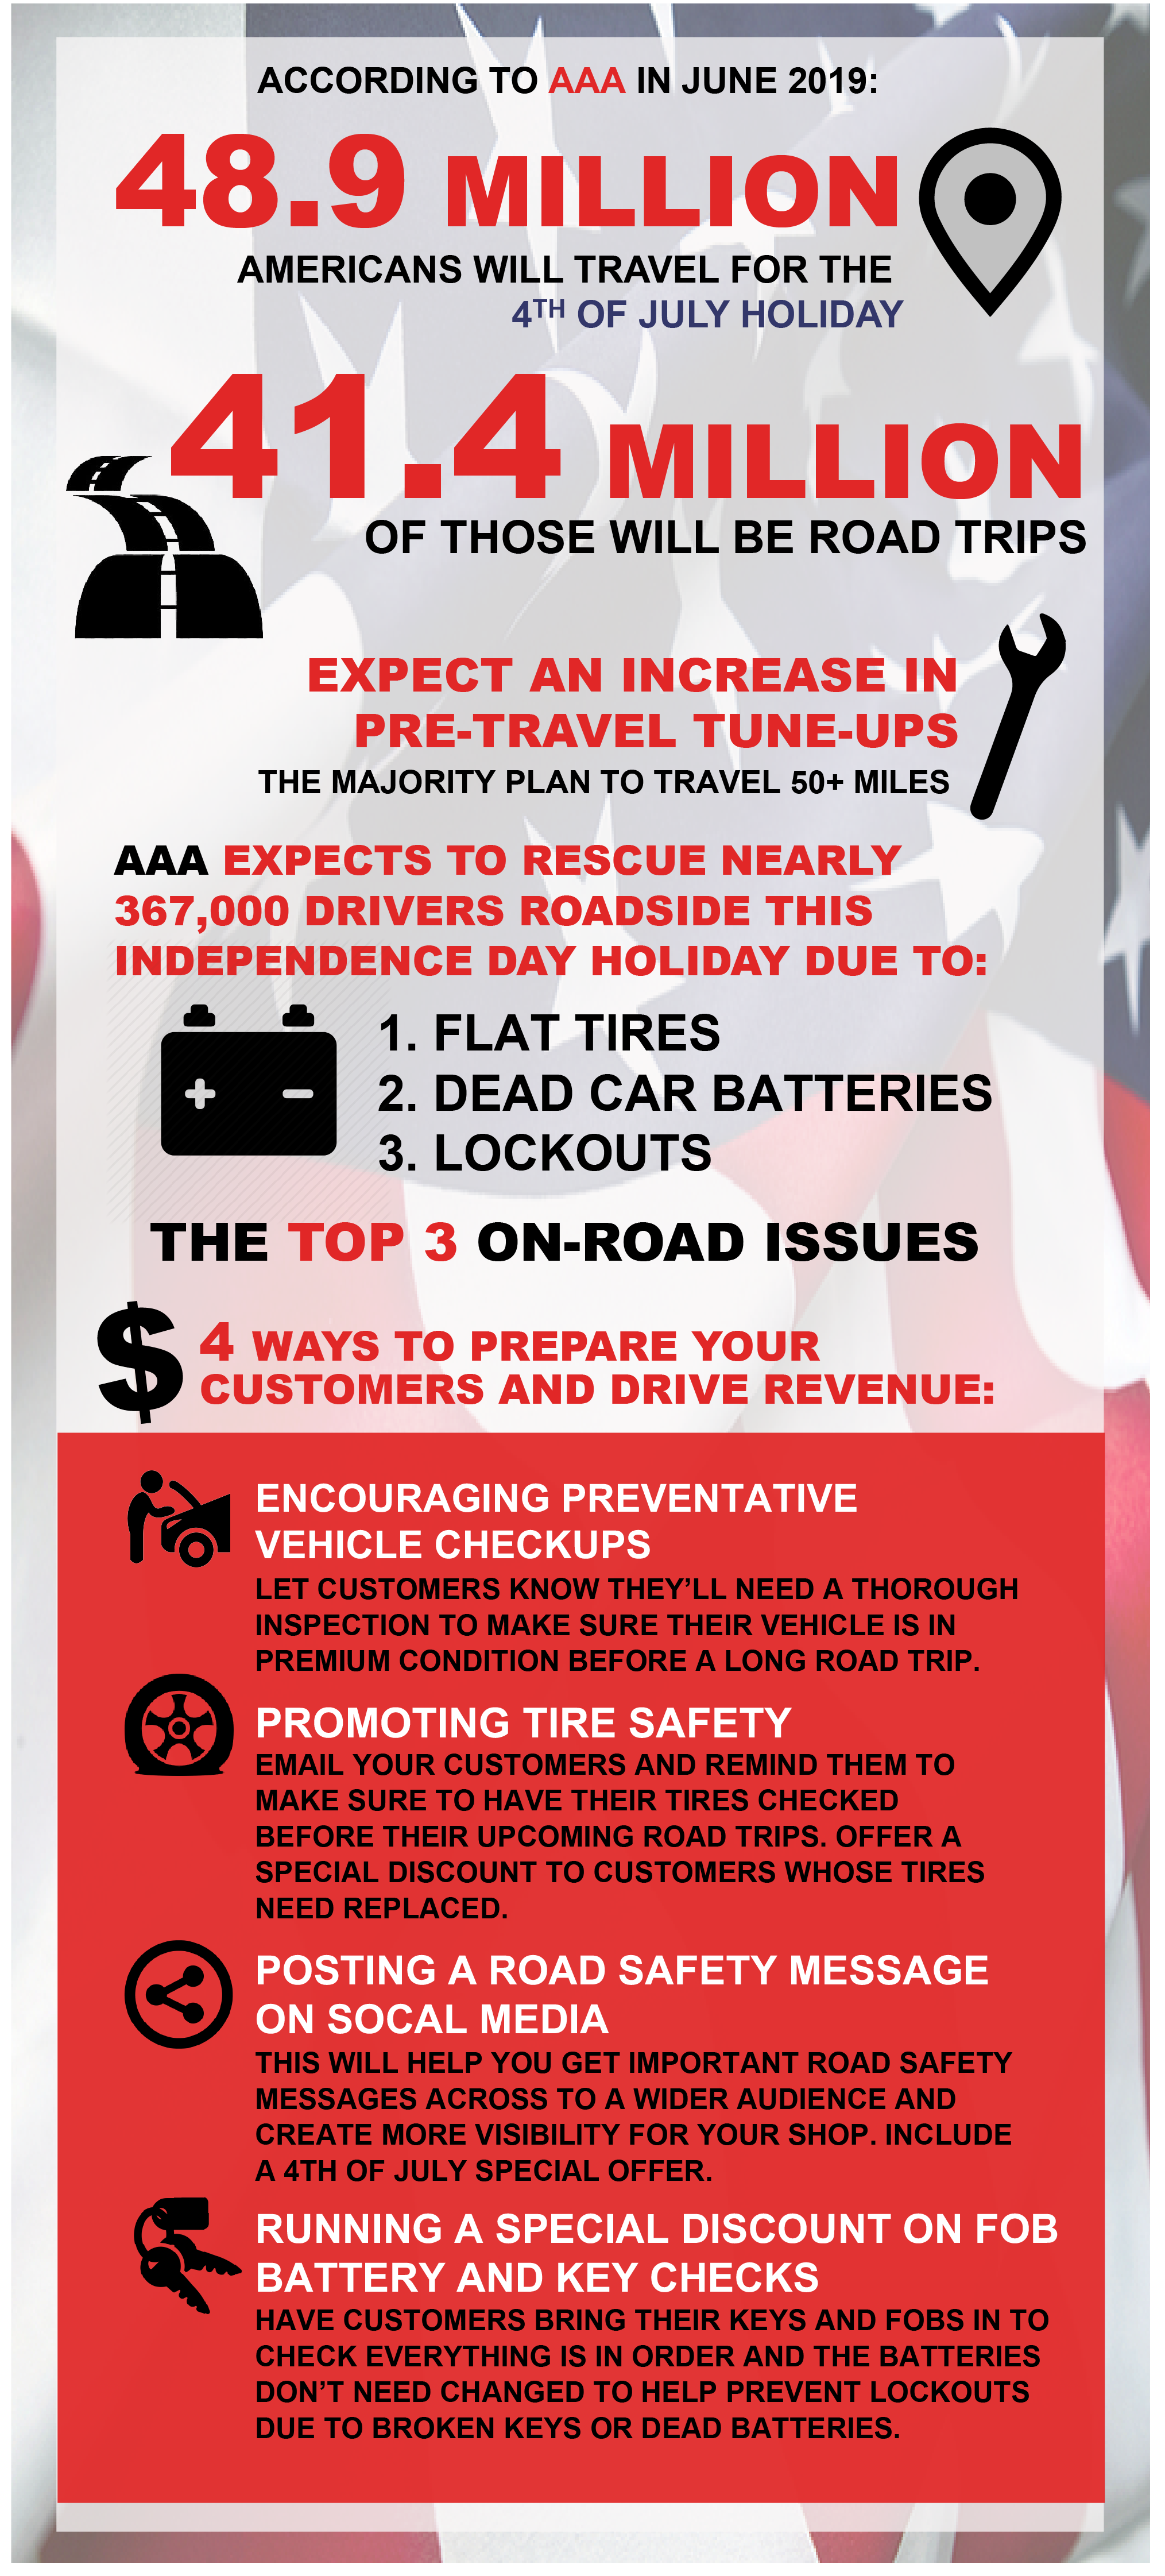 4 ways to Drive Revenue and Prepare Customers for 4th of July Road Trips PACE